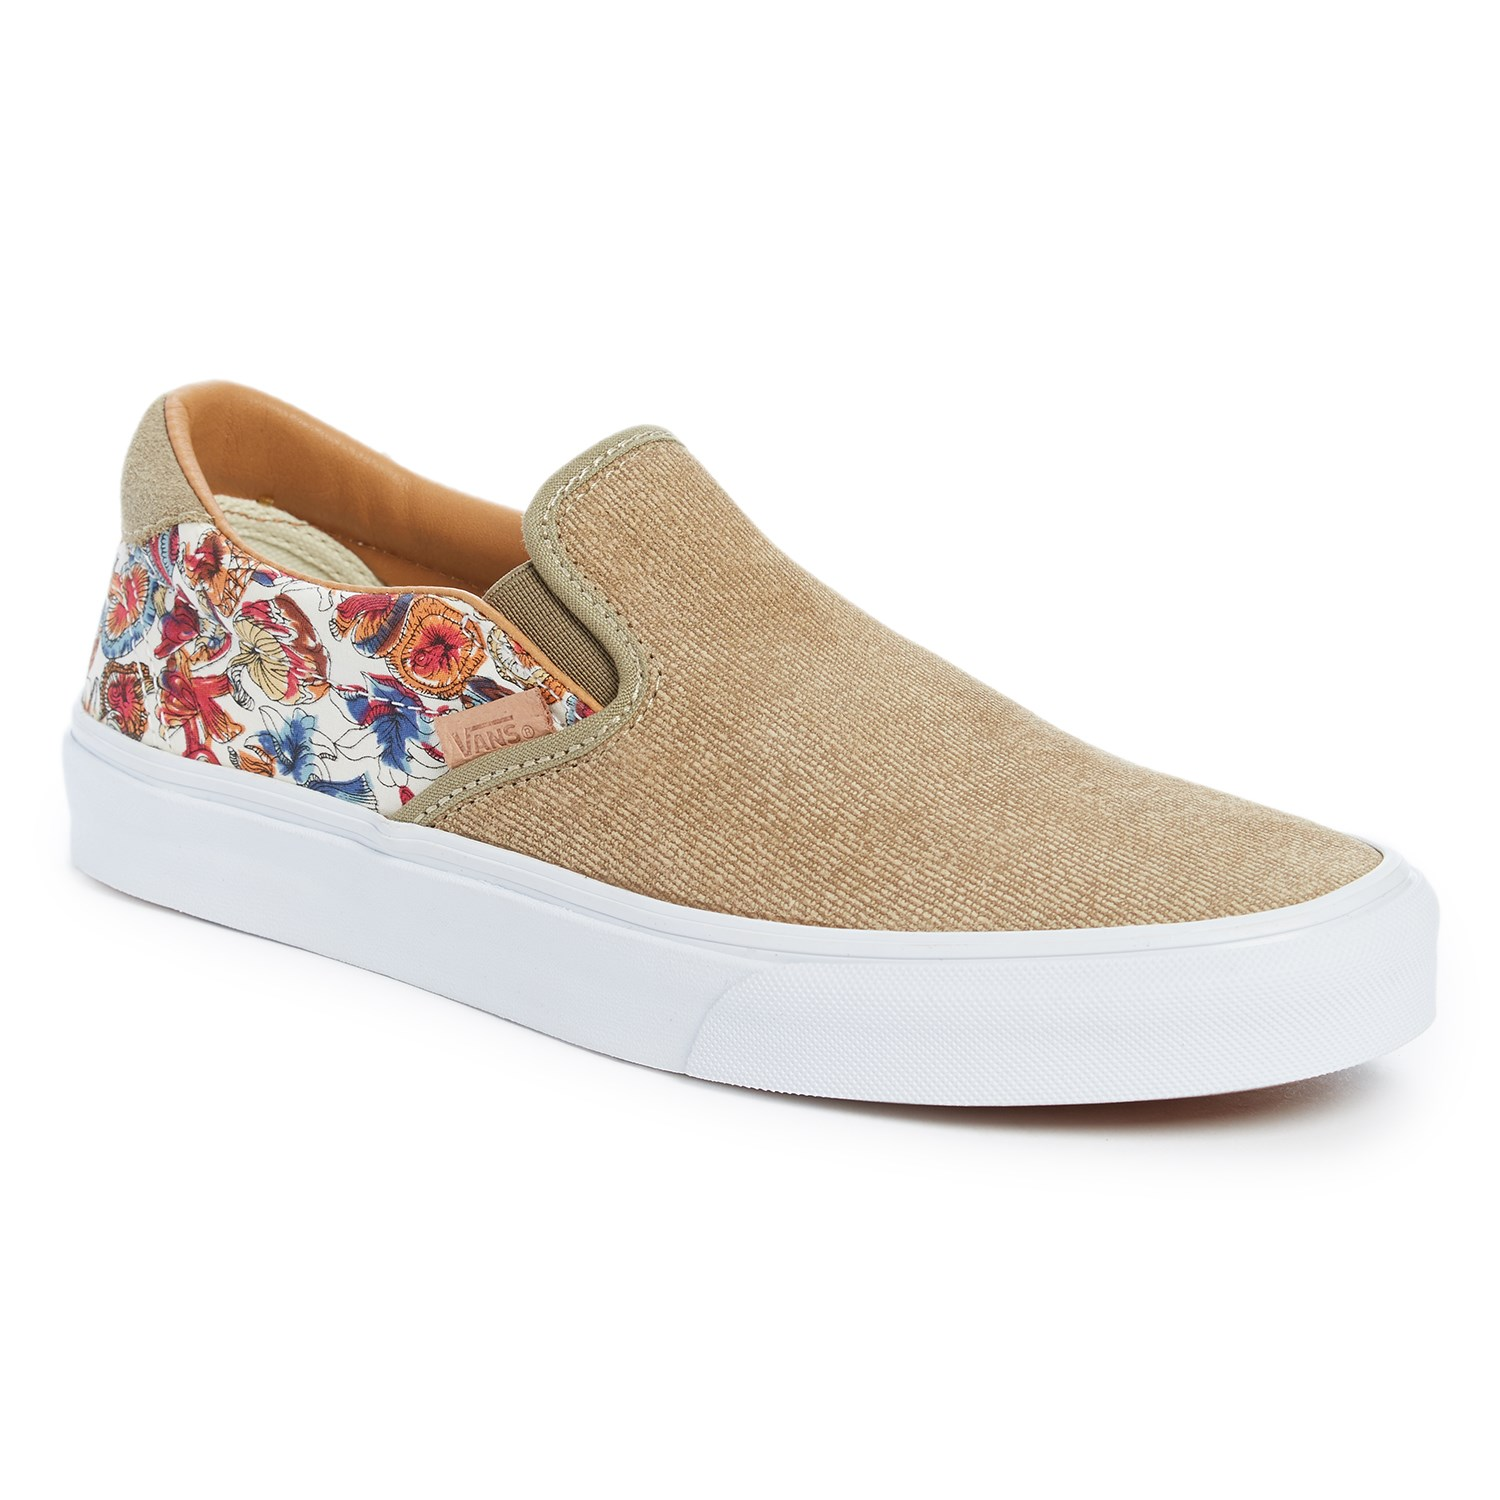 This review is fromWomen's Abbey Slip On Sneaker